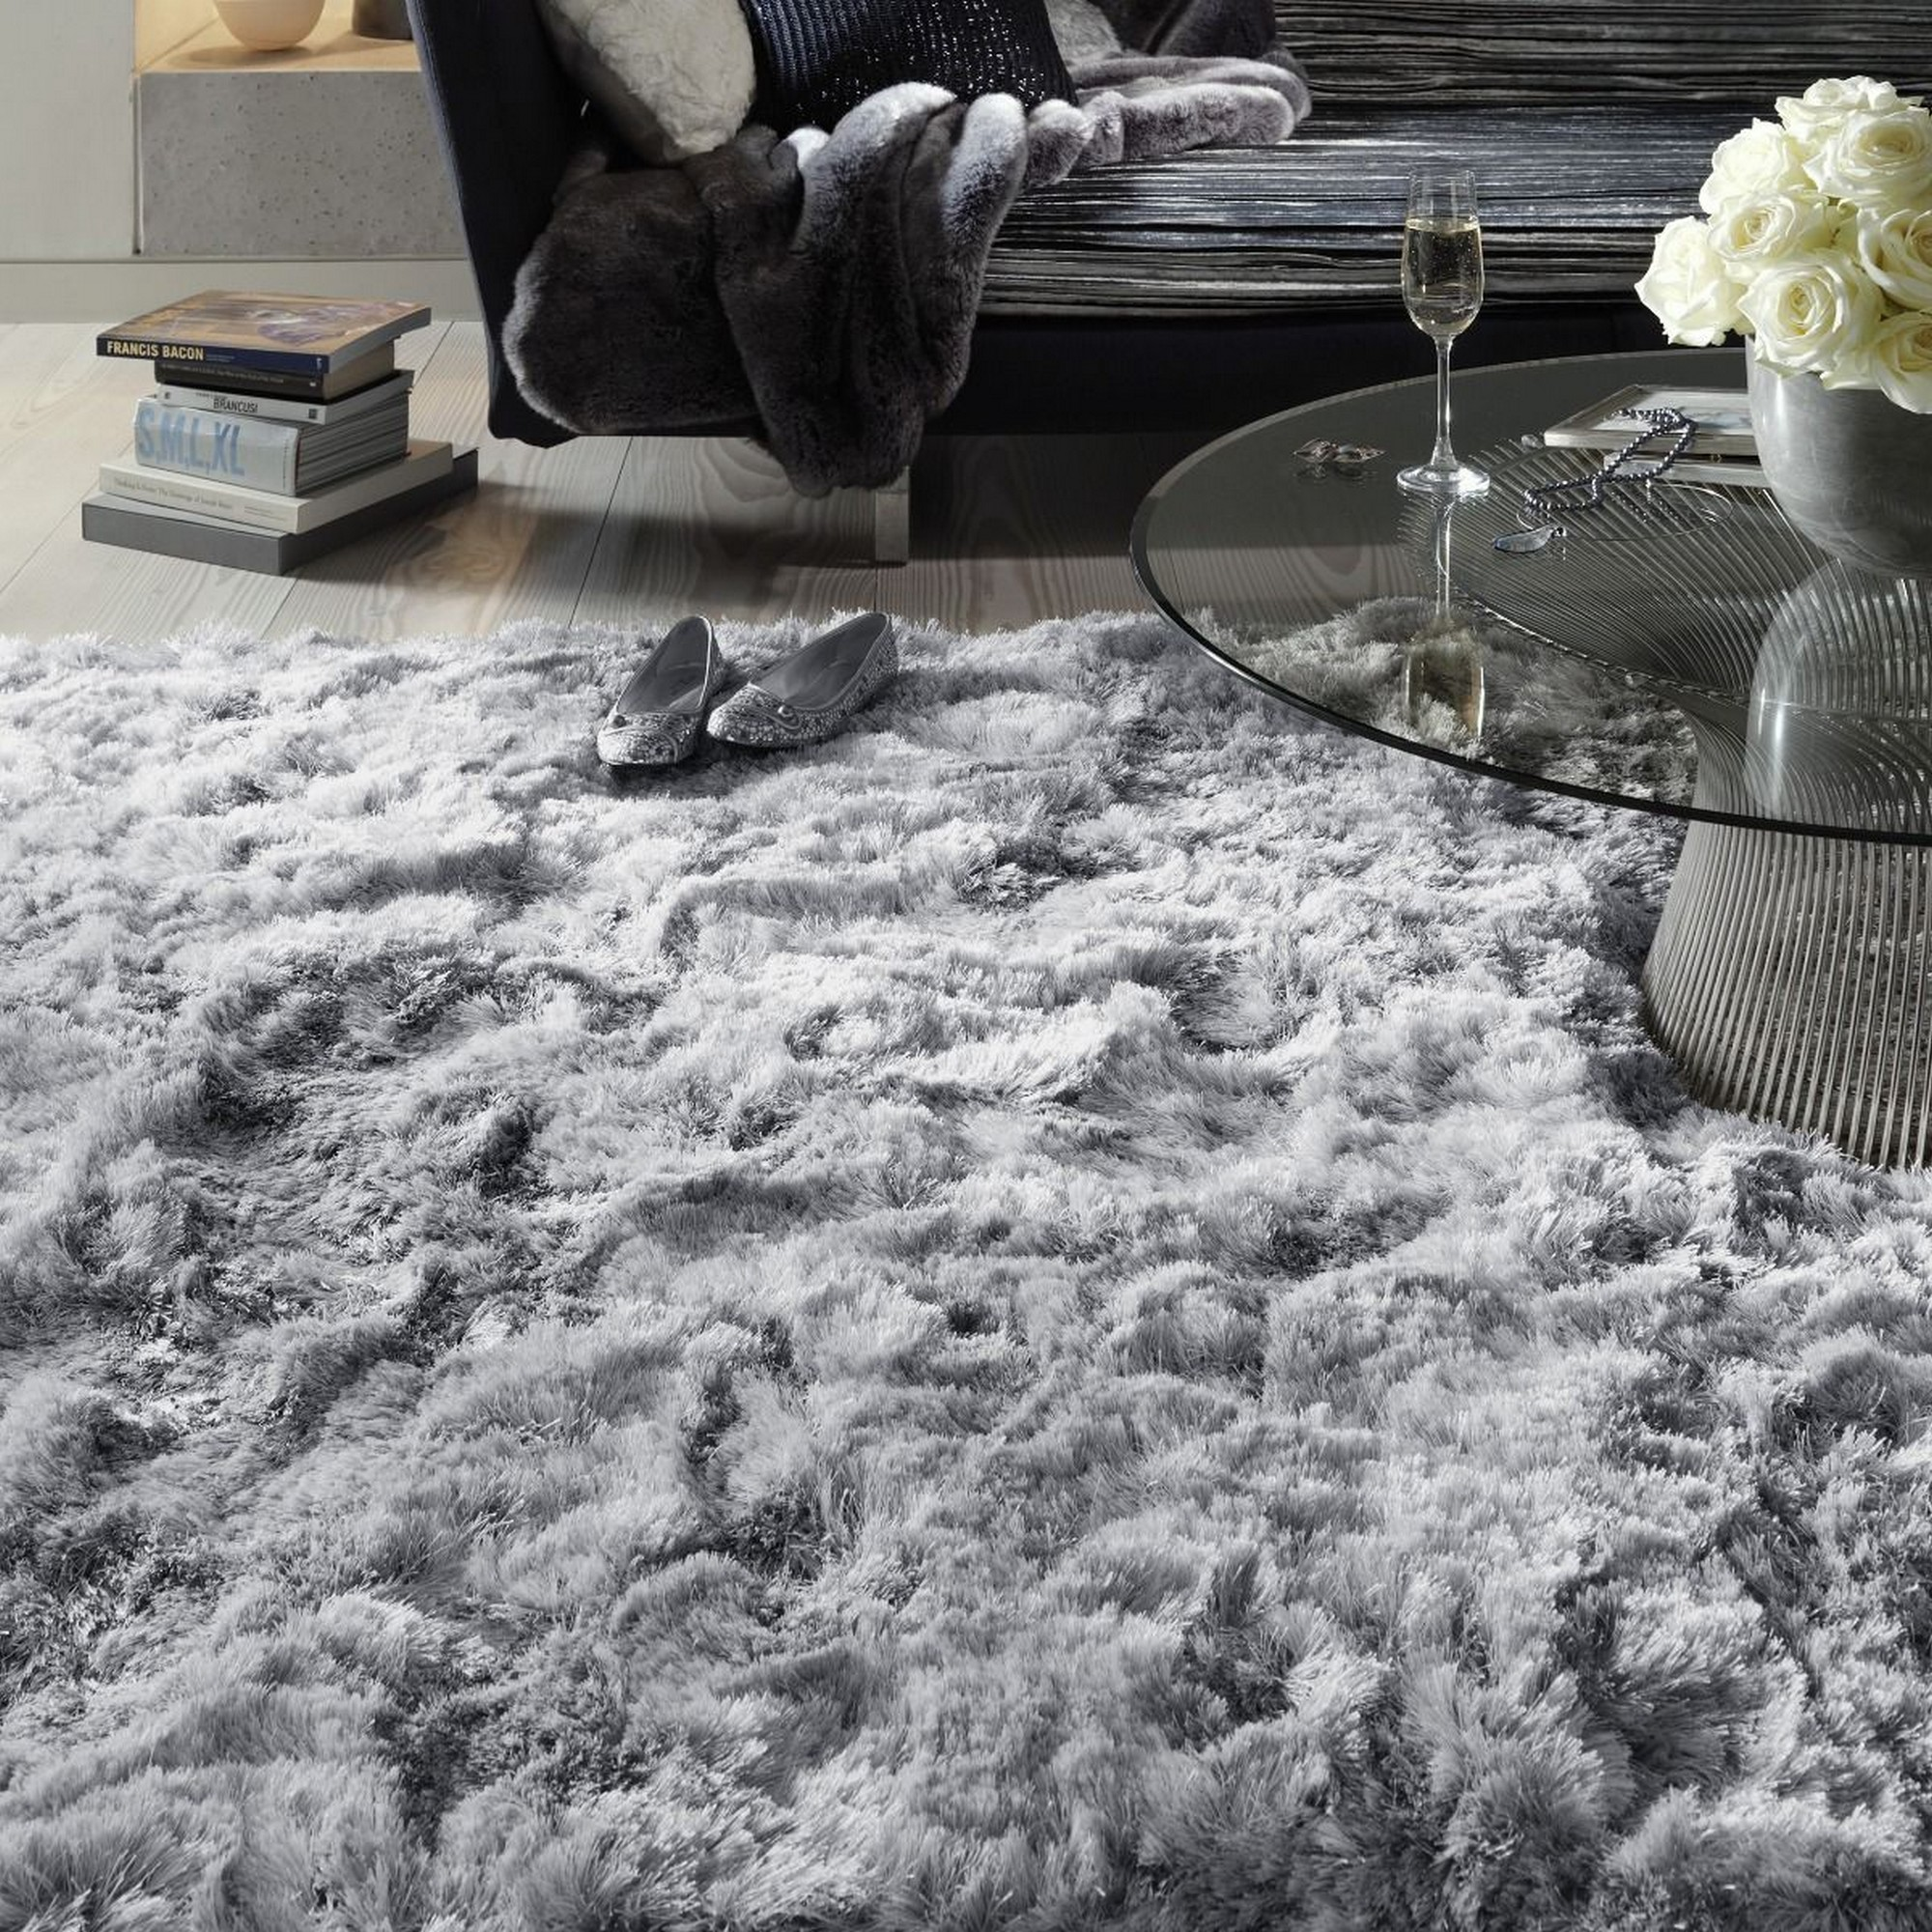 Plush Rug Zinc: Plush Shaggy Rugs In Red Buy Online From The Rug Seller Uk